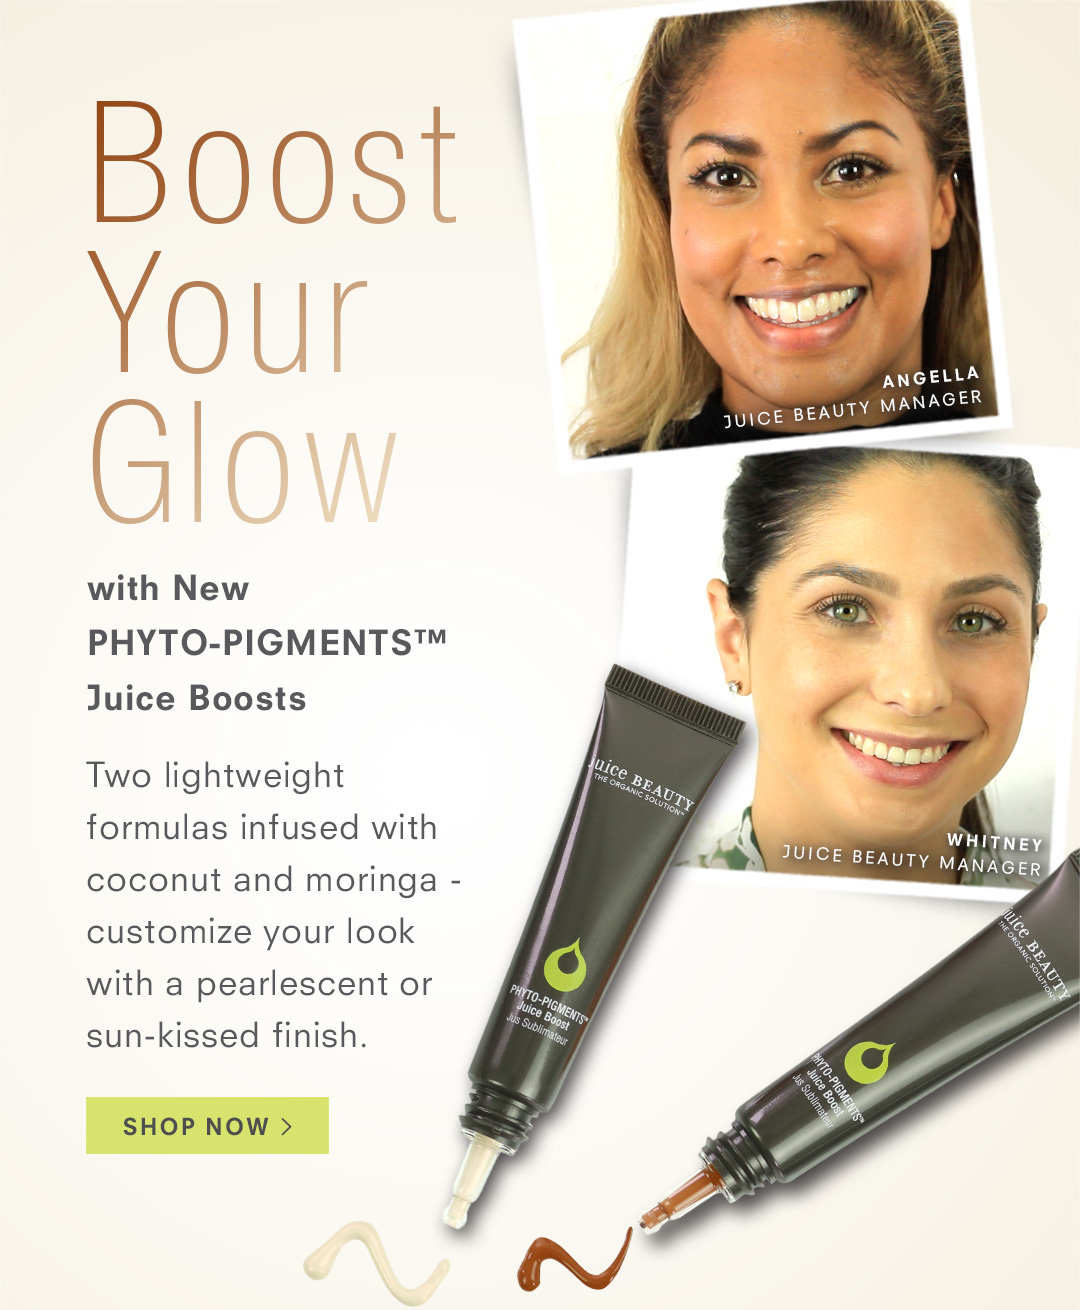 Boost Your Glow with PHYTO-PIGMENTS Juice Boost